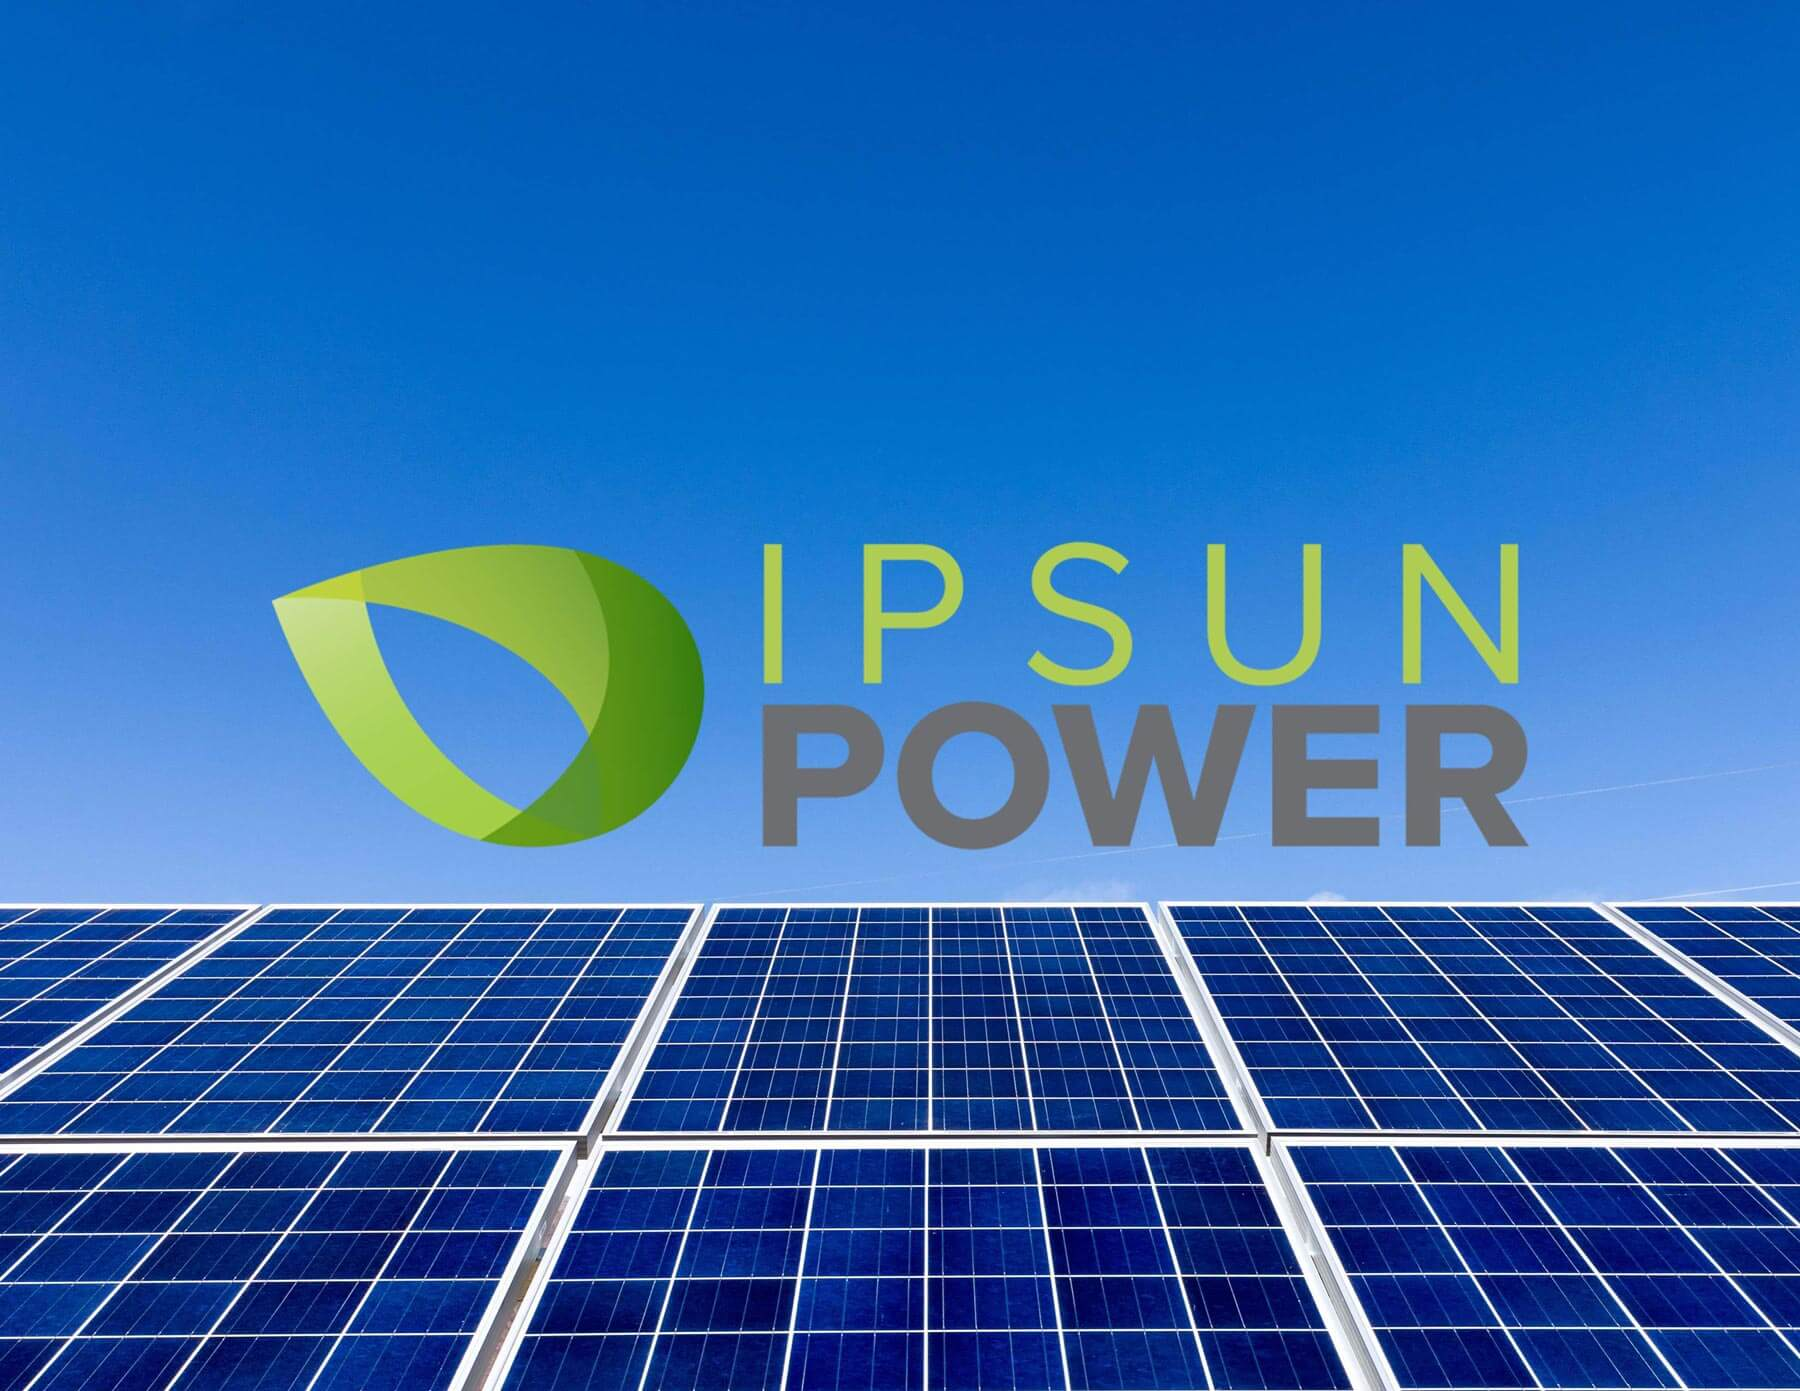 IPSUN POWER solar modules with logo